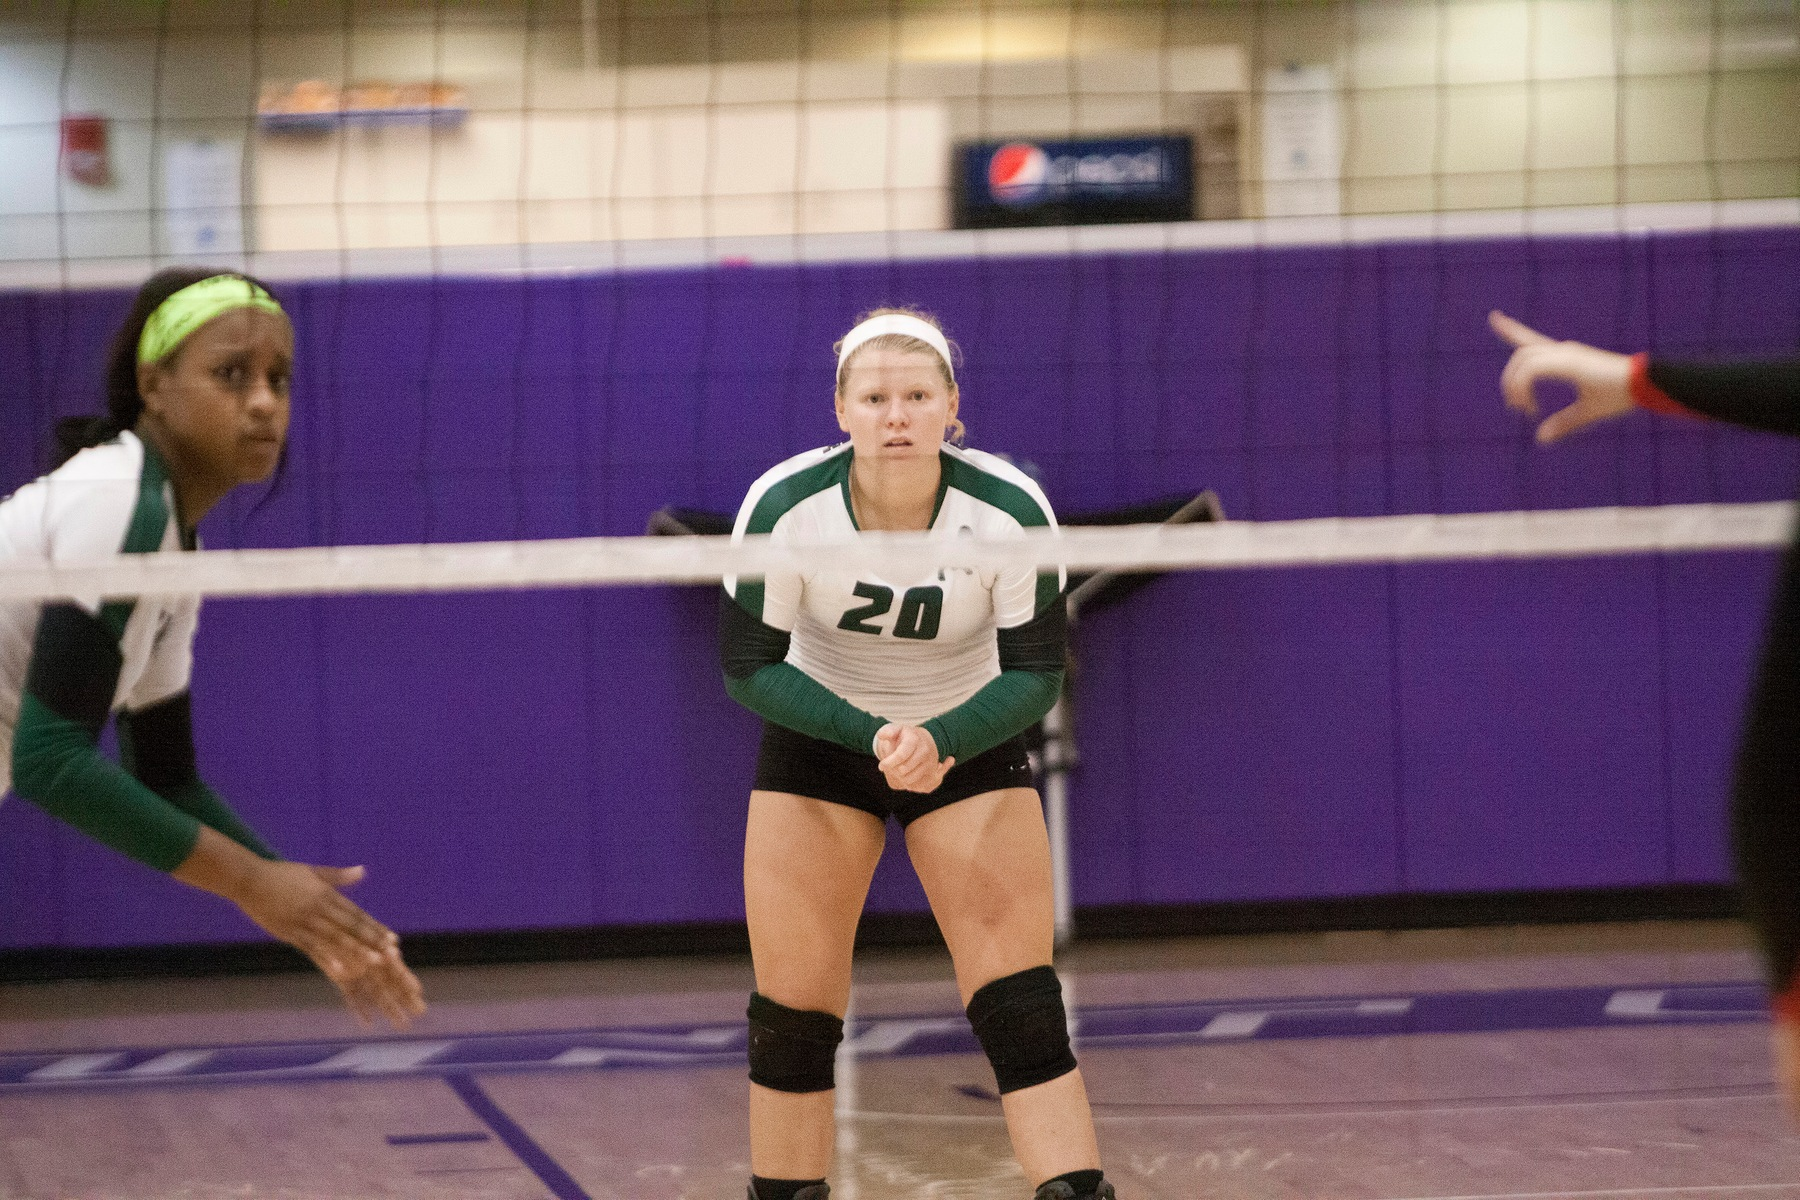 Parker Reaches 2,000 Career Dig Milestone as Bethany Sweeps Thiel